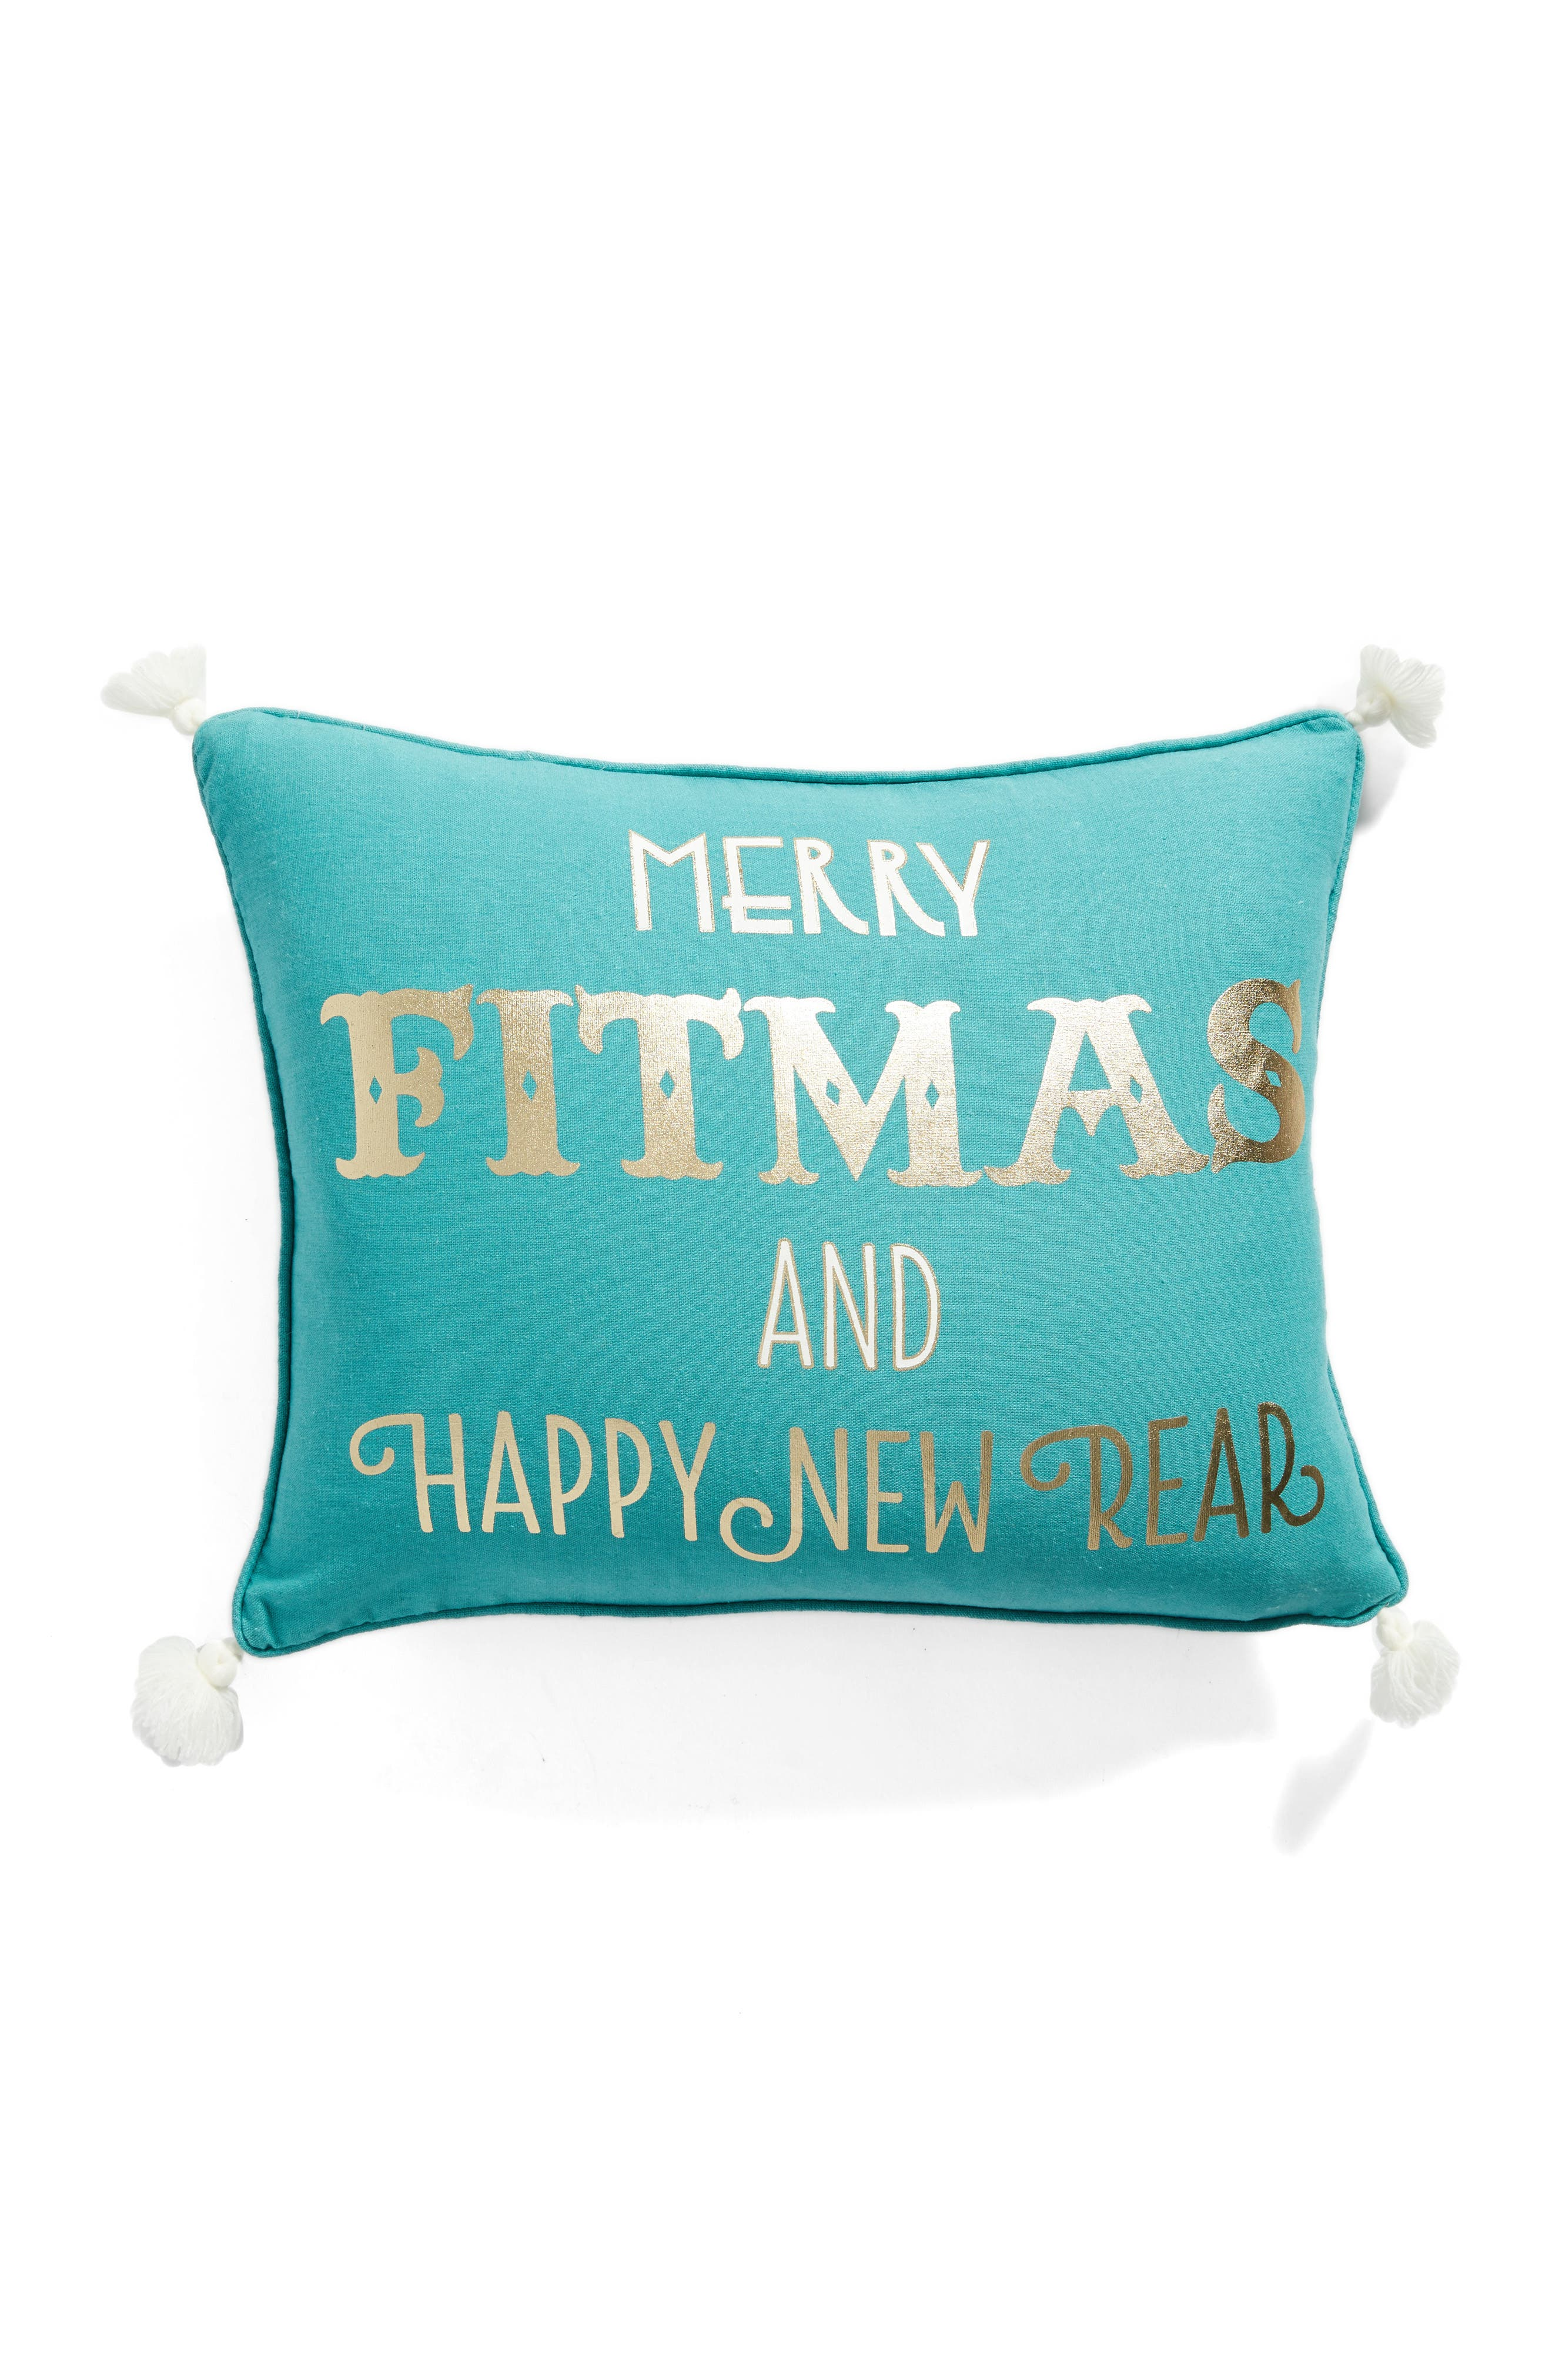 Merry Fitmas Pillow,                         Main,                         color, Blue